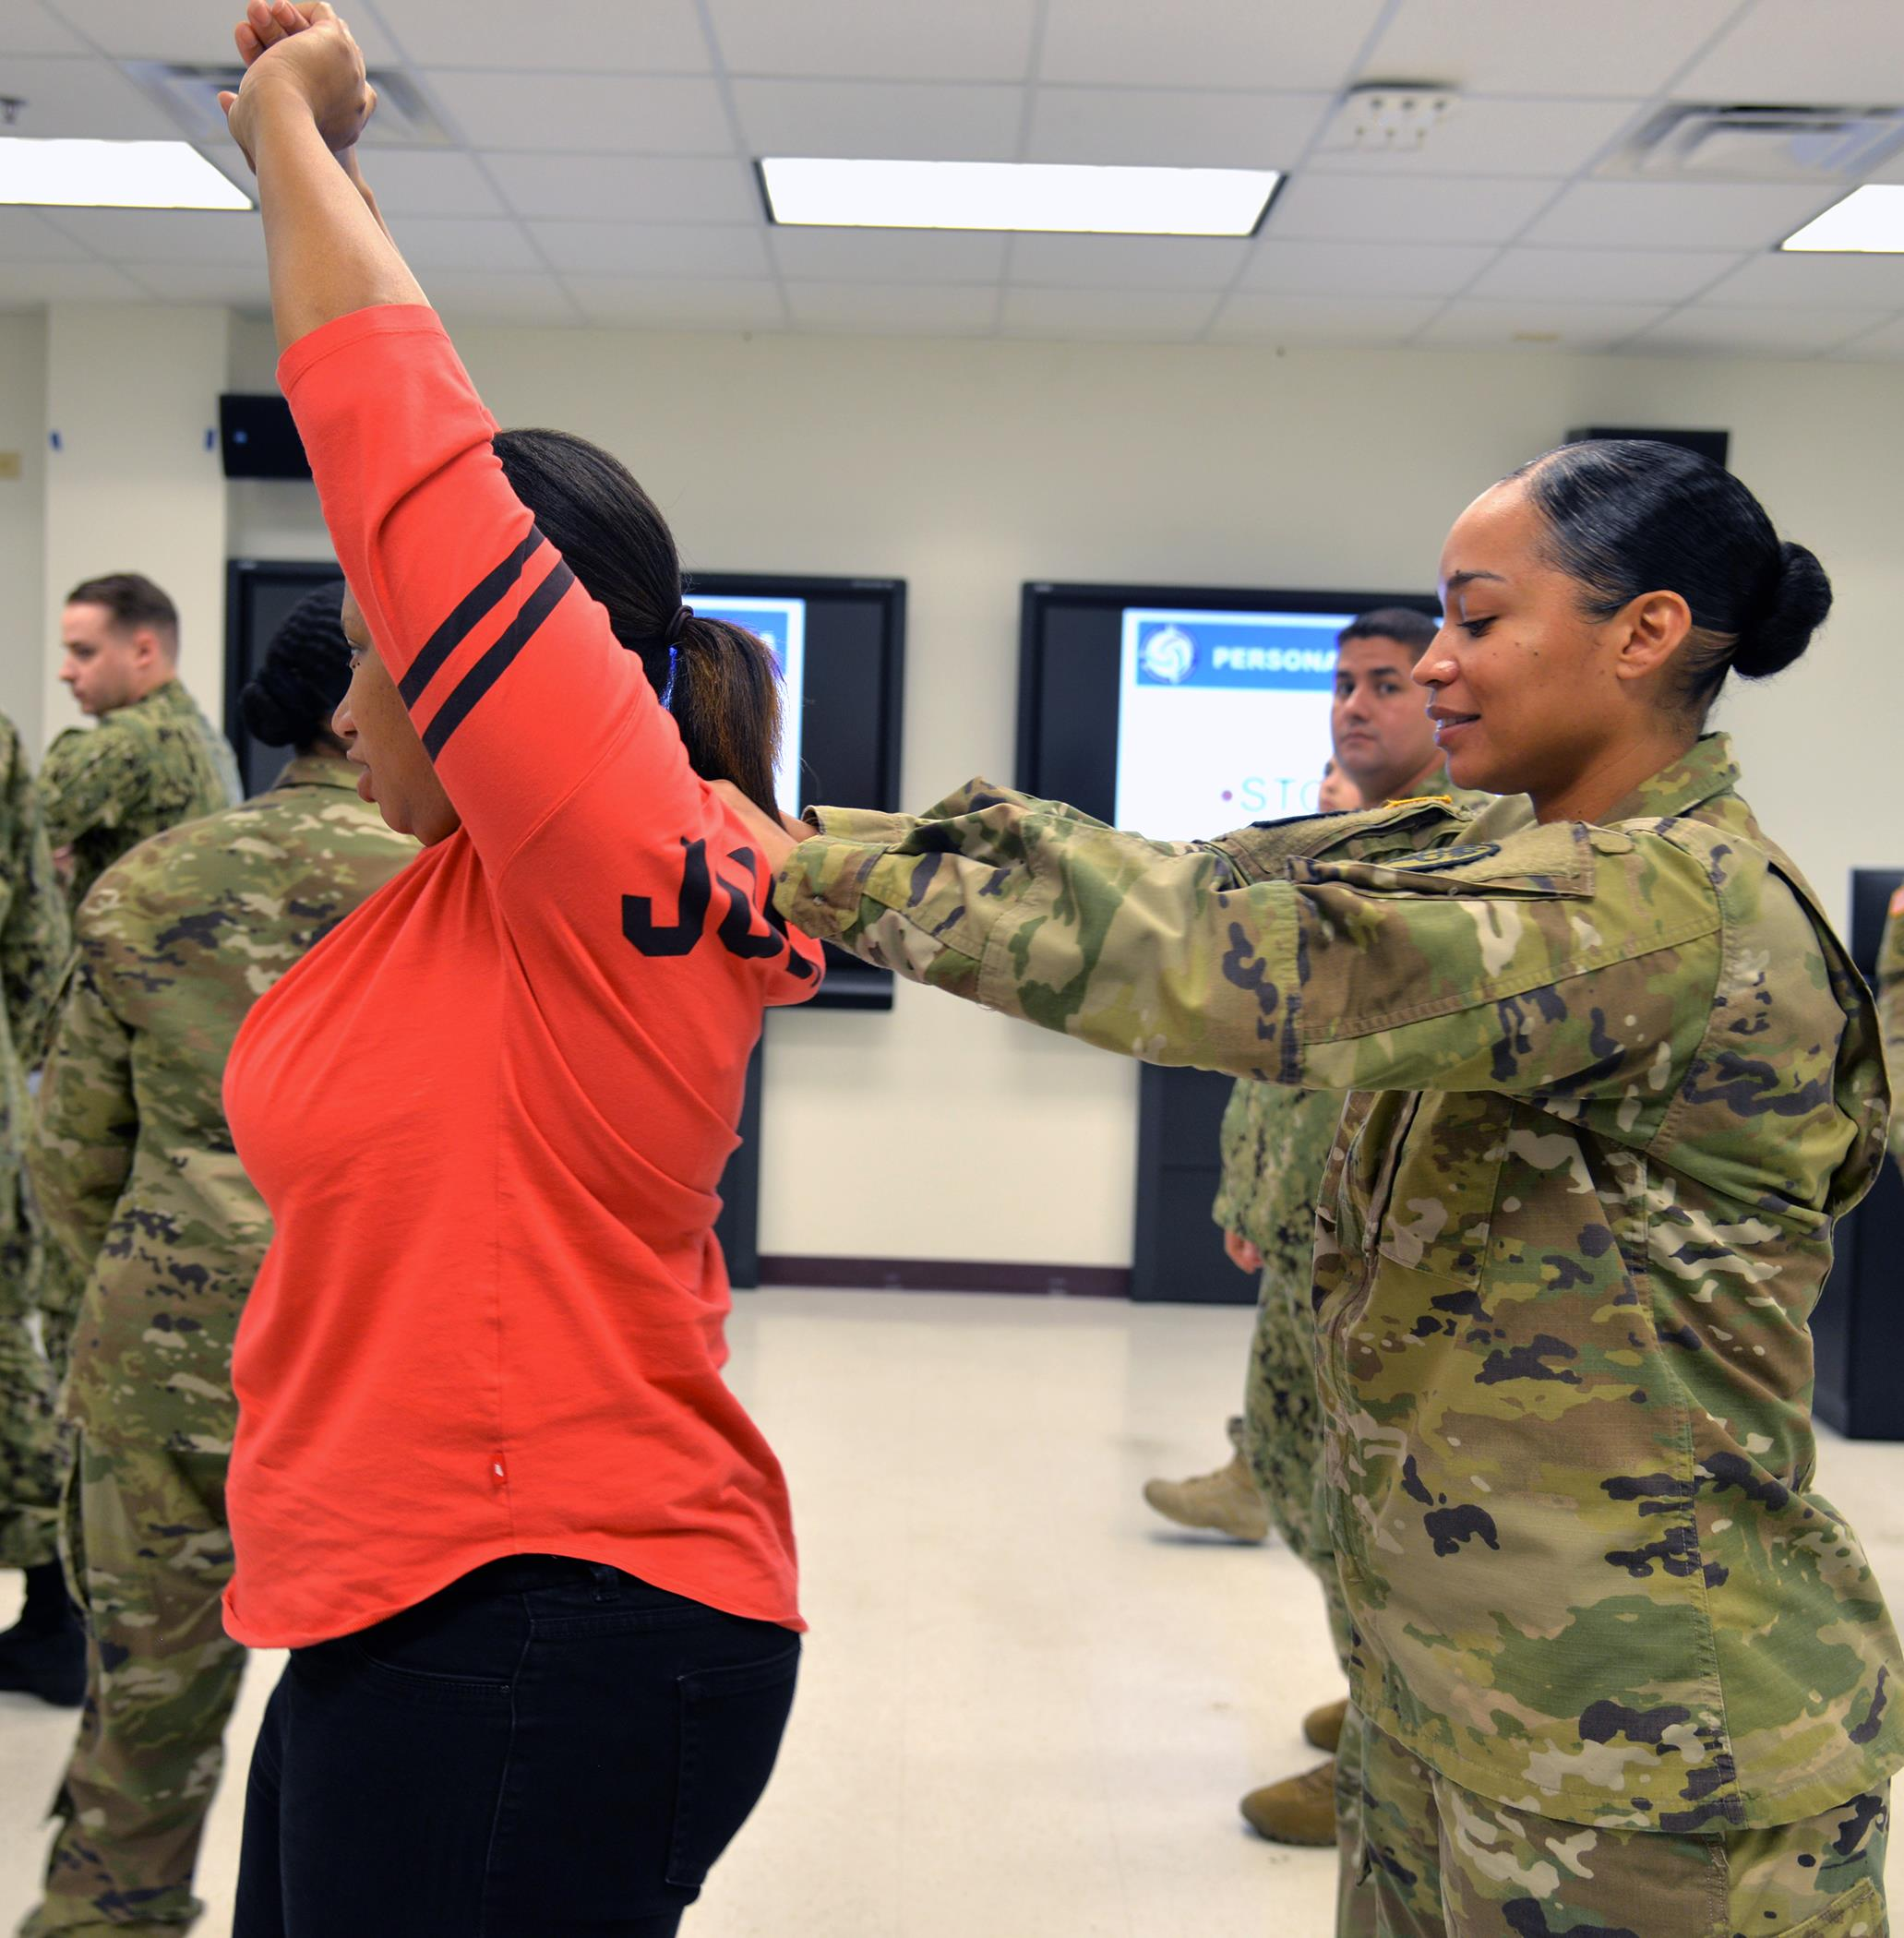 Training: Army Medical Command Training Program Teaches Patient